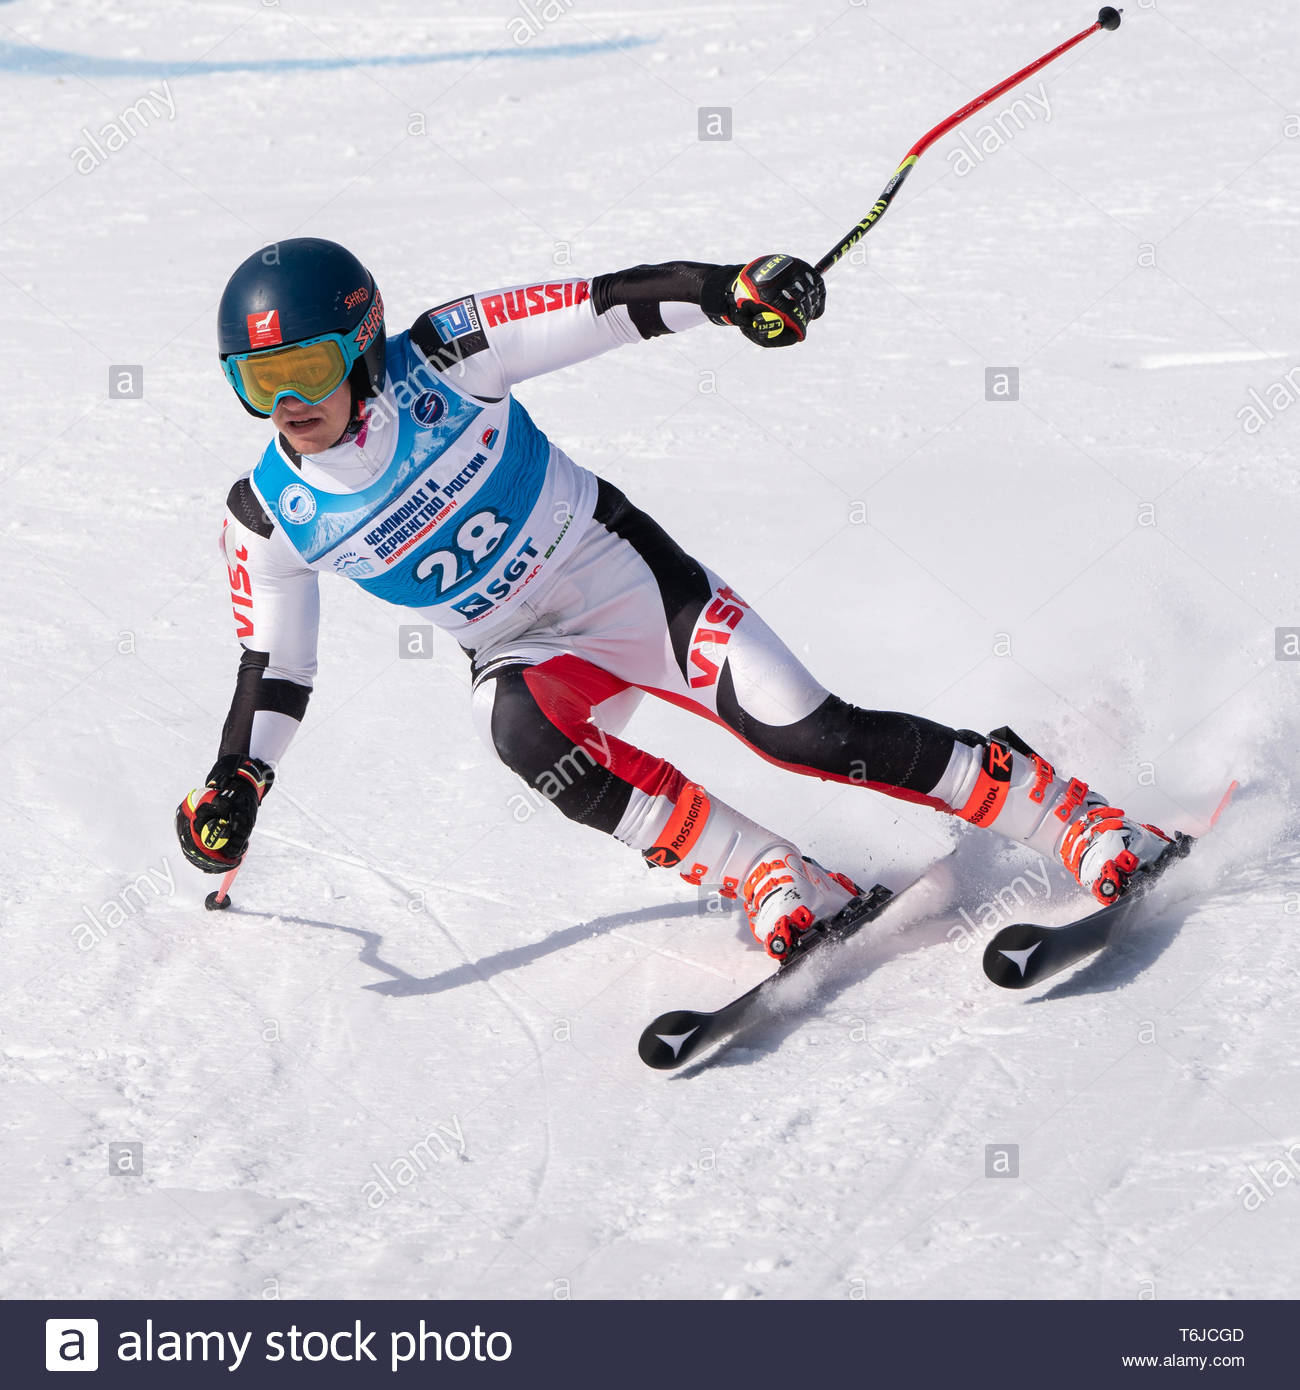 KAMCHATKA PENINSULA, RUSSIA - APR 1, 2019: Mountain skier Sazonov Egor (Kamchatka Krai) skiing down mount slope. Russian Alpine Skiing Cup, Internatio - Stock Image